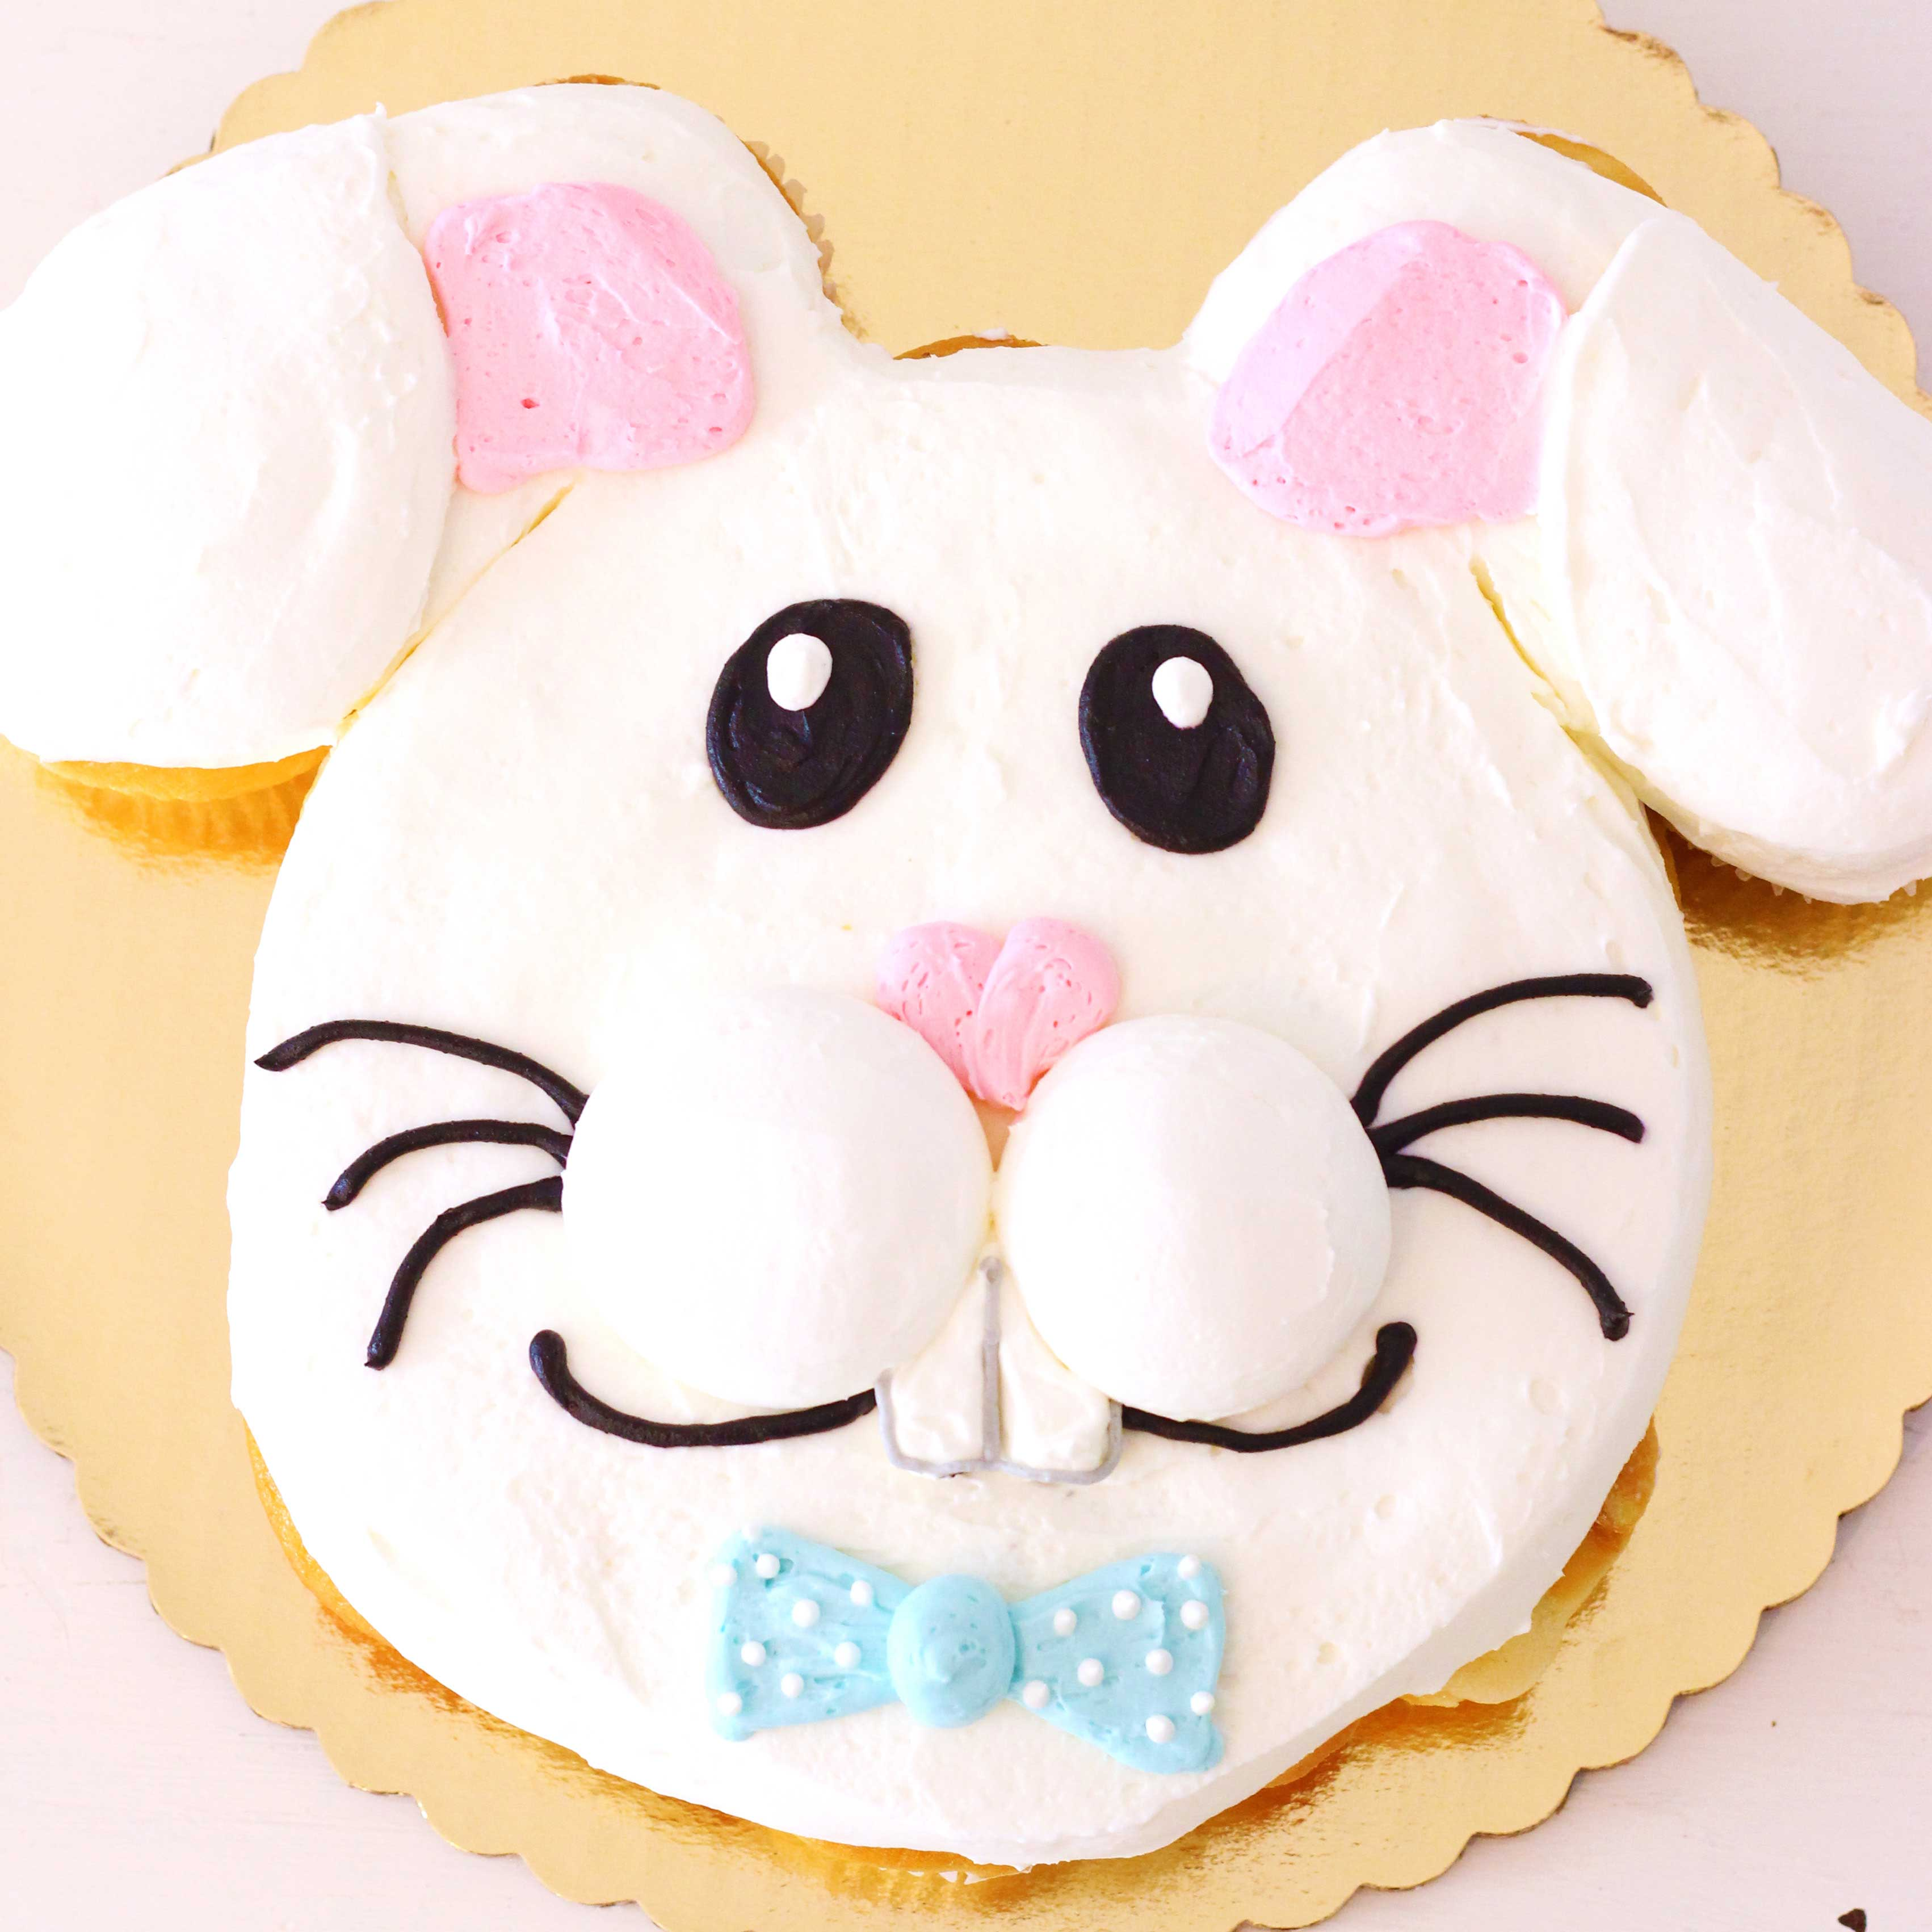 Easter bunny cupcake cake by french bakery in northern new jersey cafe pierrot